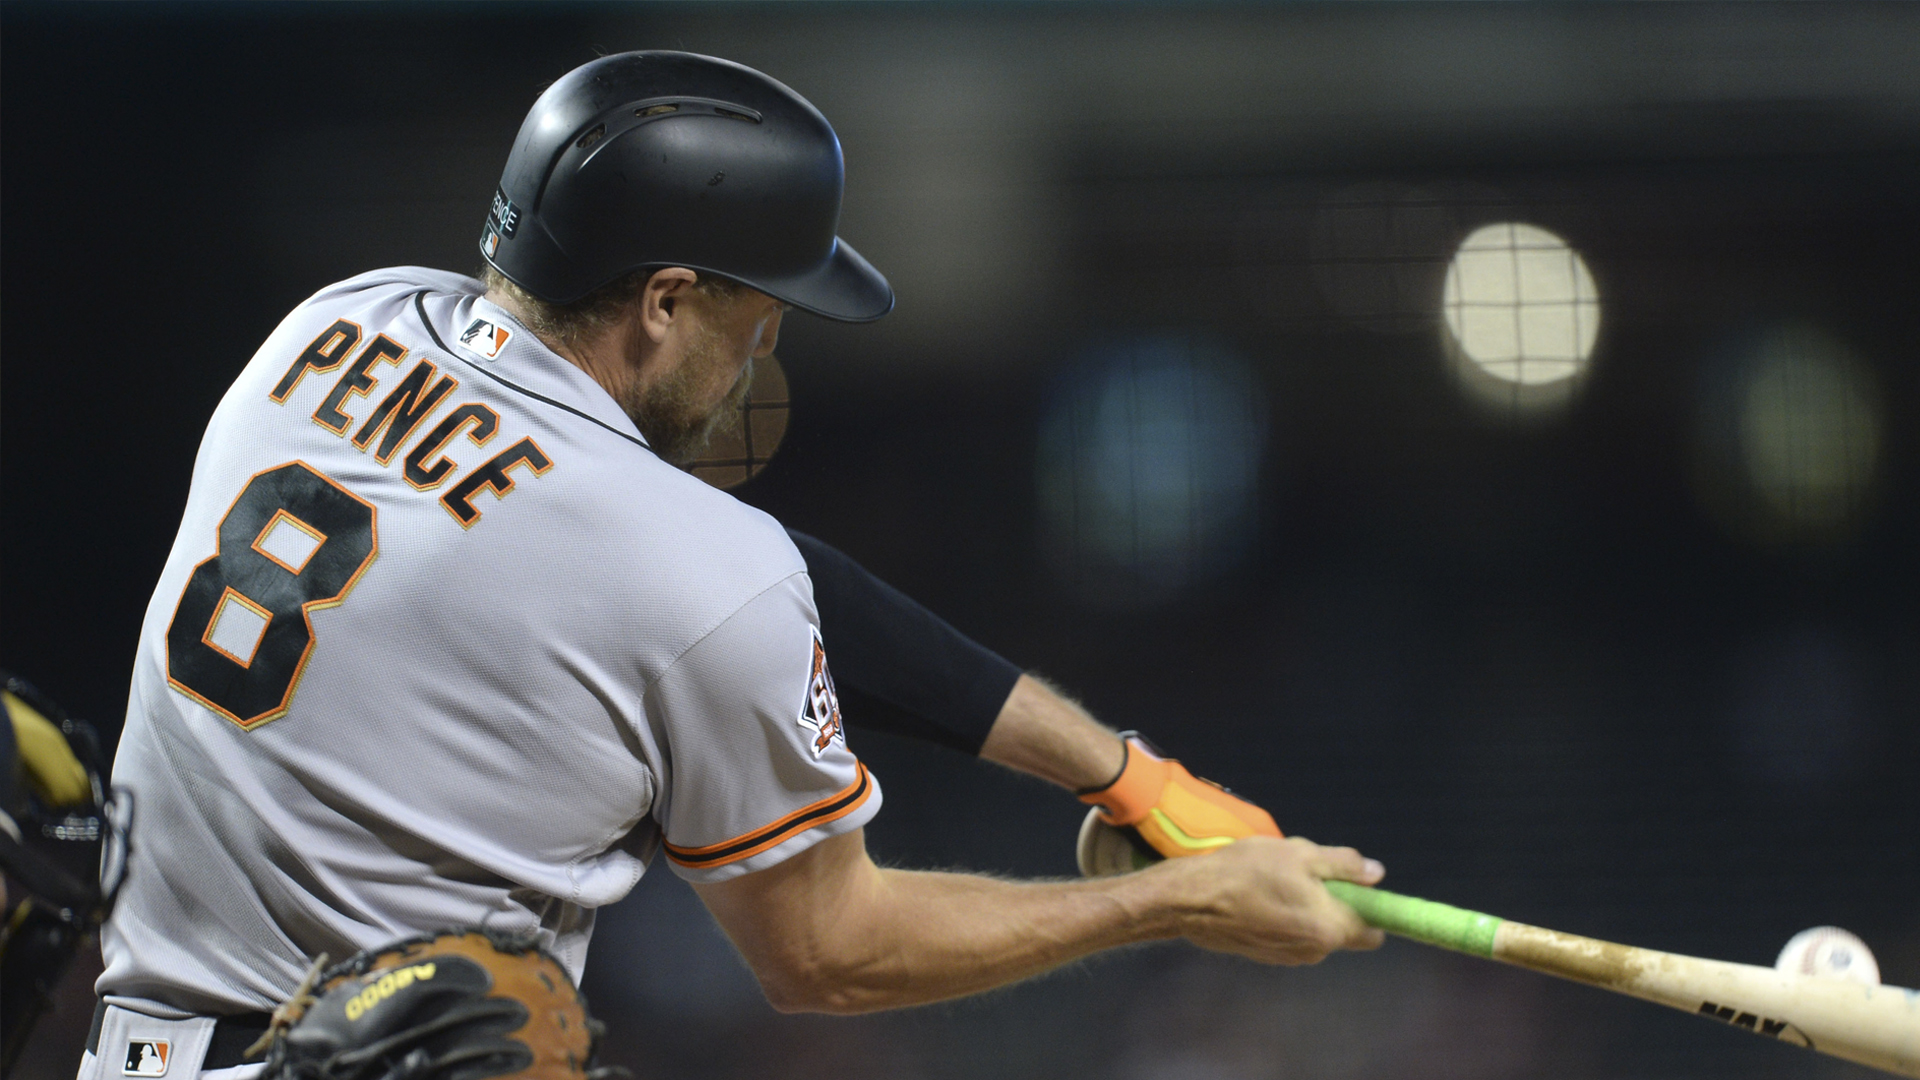 Giants Fend Off Dbacks To Clinch Weekend Sweep